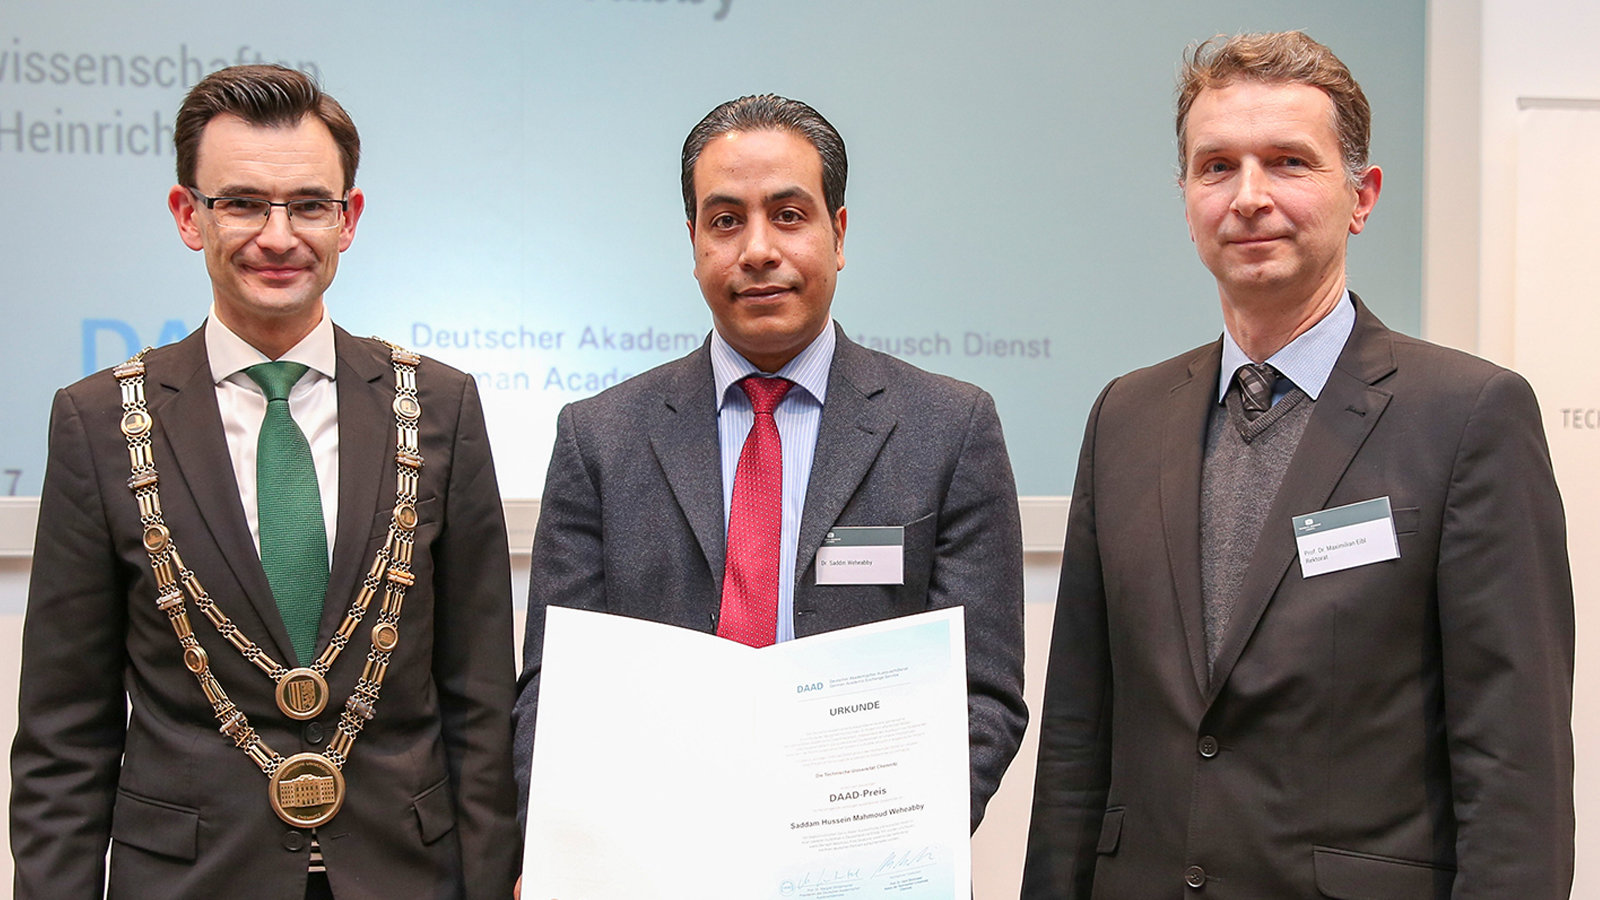 A group of three people, including a person, who is holding a certificate